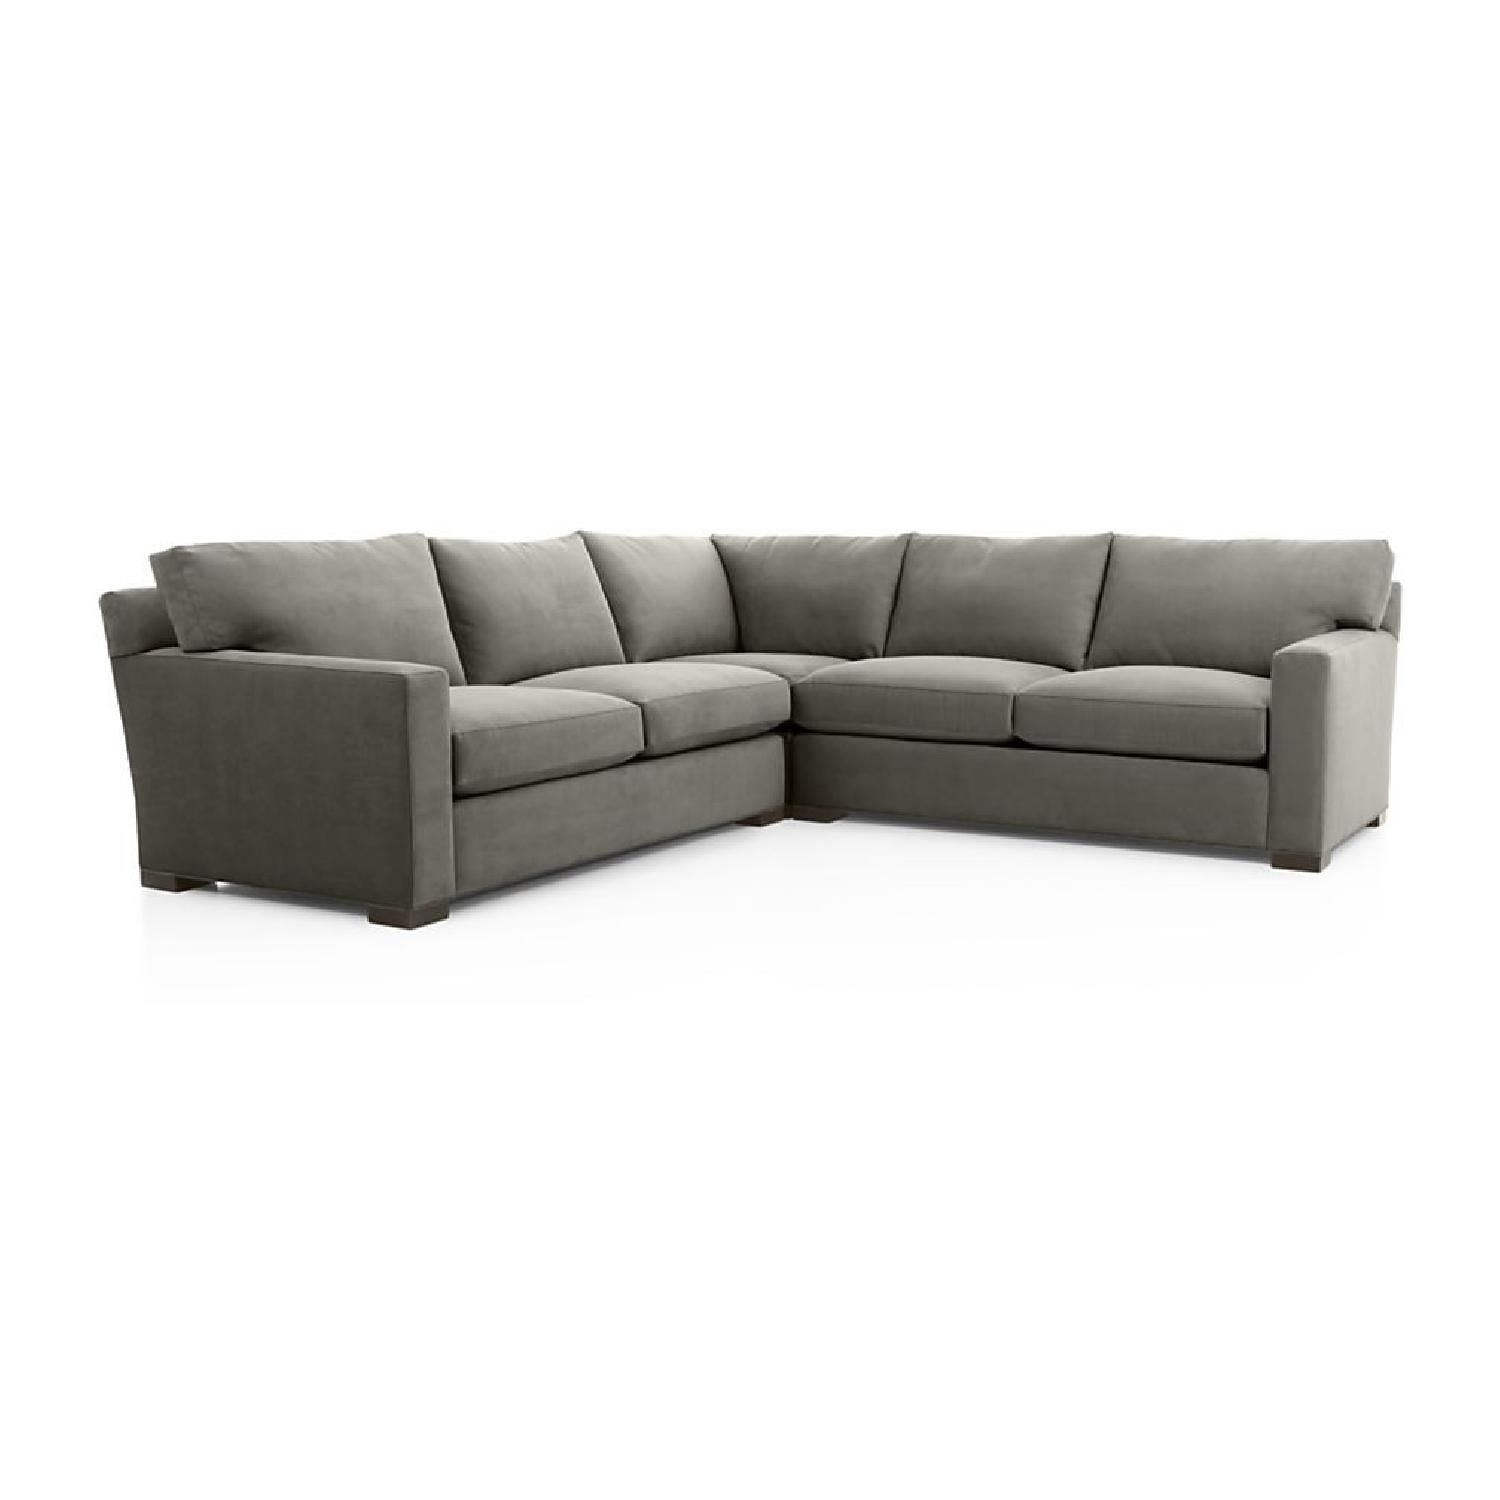 Crate & Barrel Axis Ii 3 Piece Sleeper Sectional | Sofas | Pinterest With Aidan 4 Piece Sectionals (View 12 of 25)